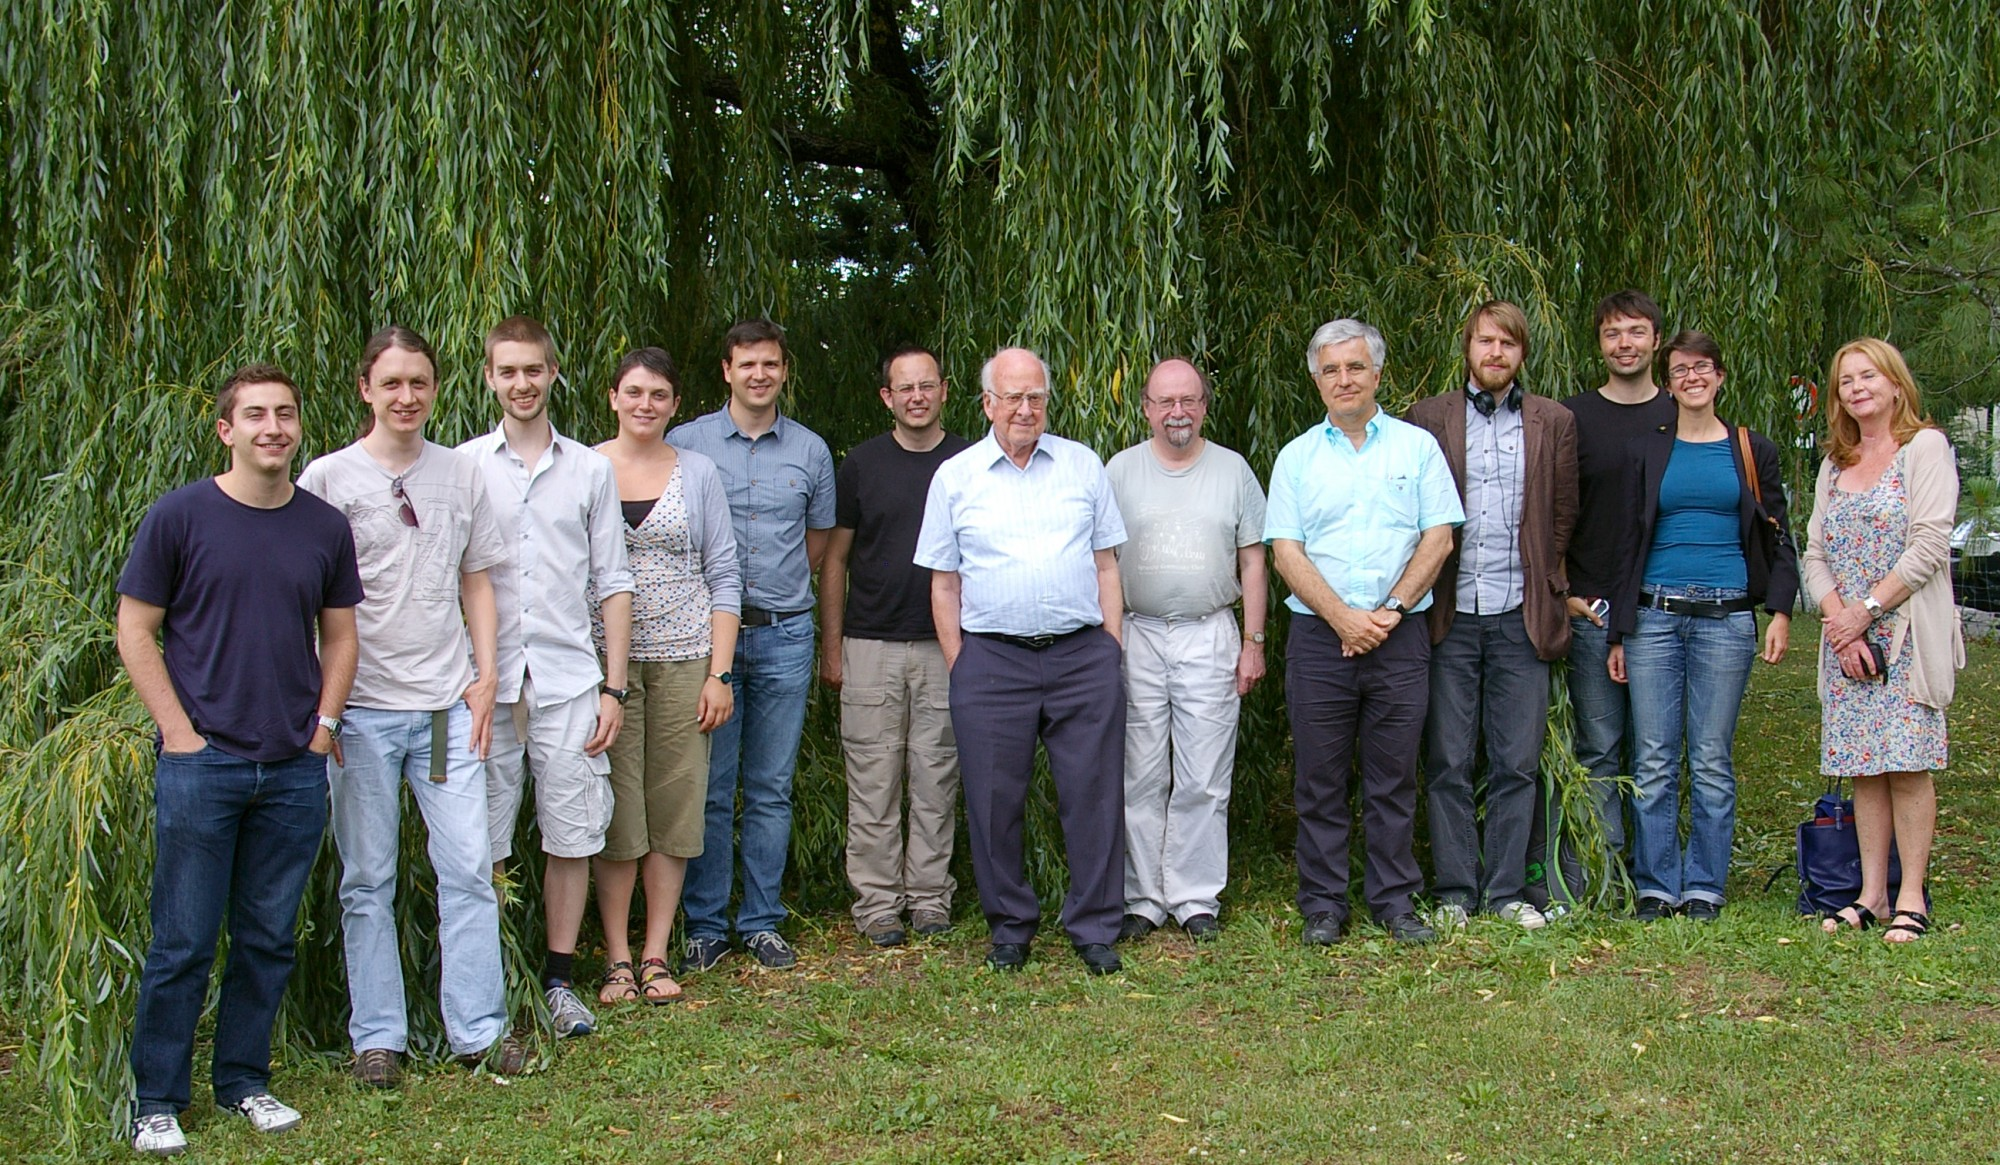 Peter Higgs and PhD student Chiara Debenedetti (4th from left) with other members of the ATLAS team.